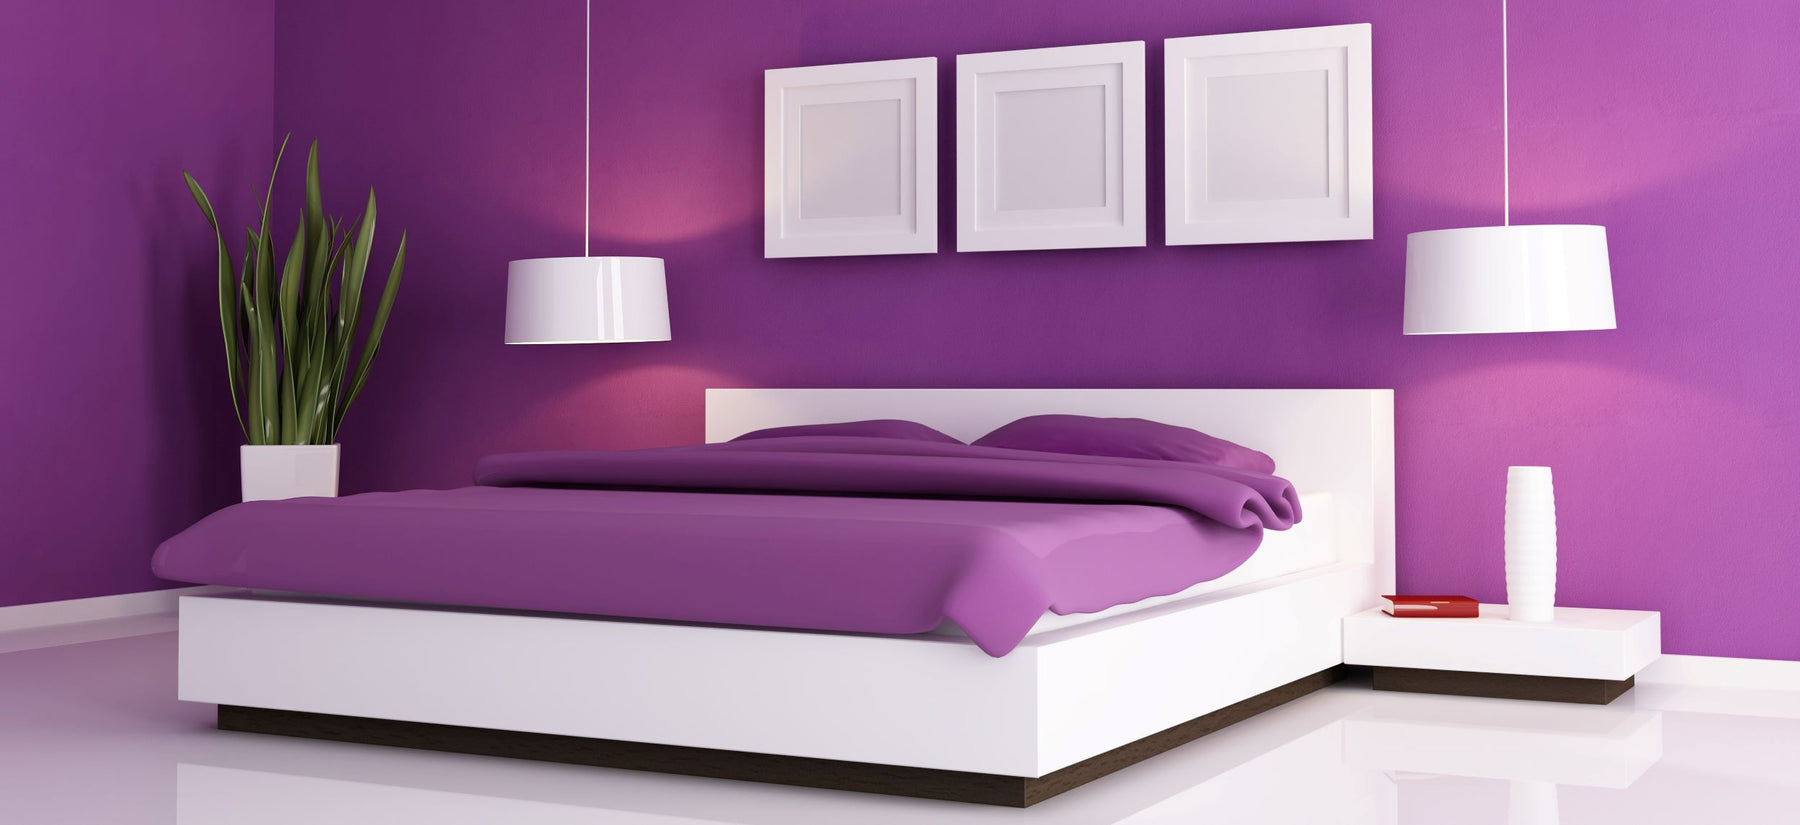 purple themed bedroom with large platform bed and white accents